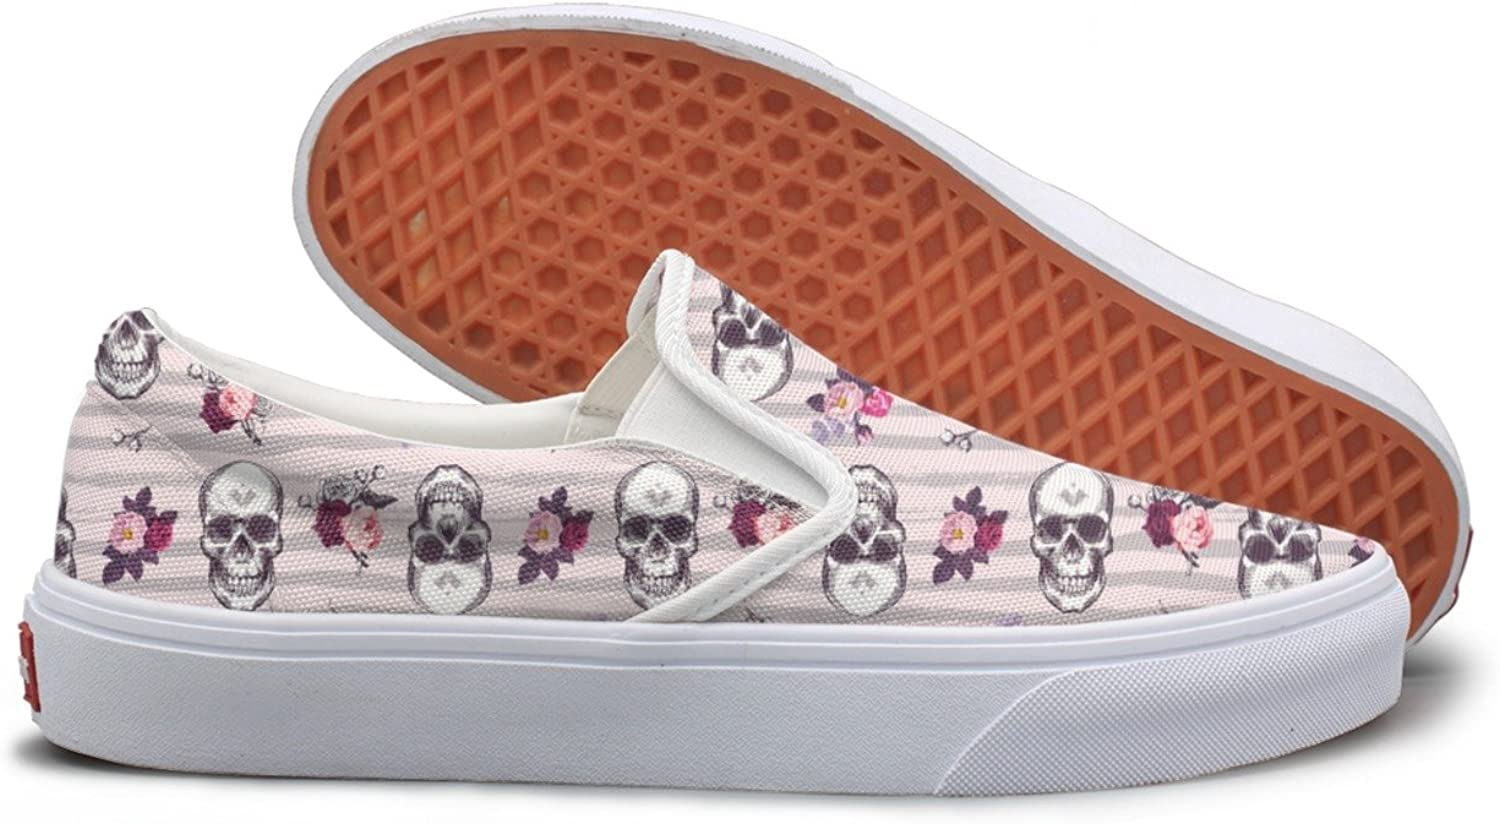 Hjkggd fgfds Casual Bueaty pinks with Skull Women's Canvas shoes